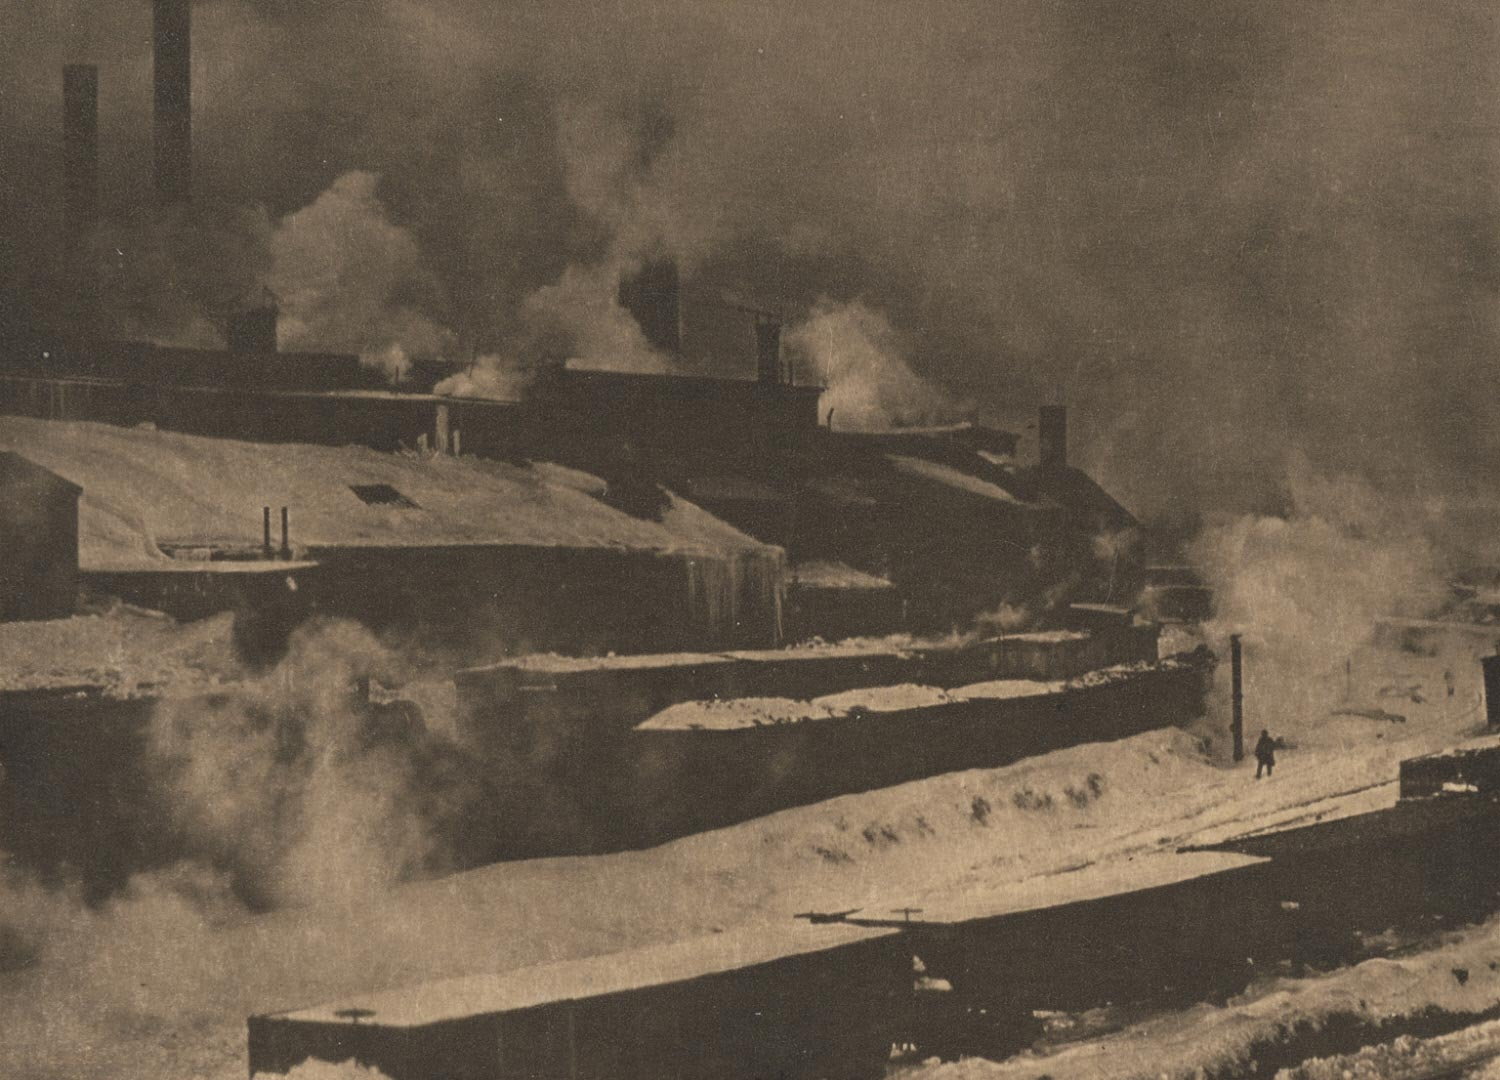 'Midst Steam and Smoke